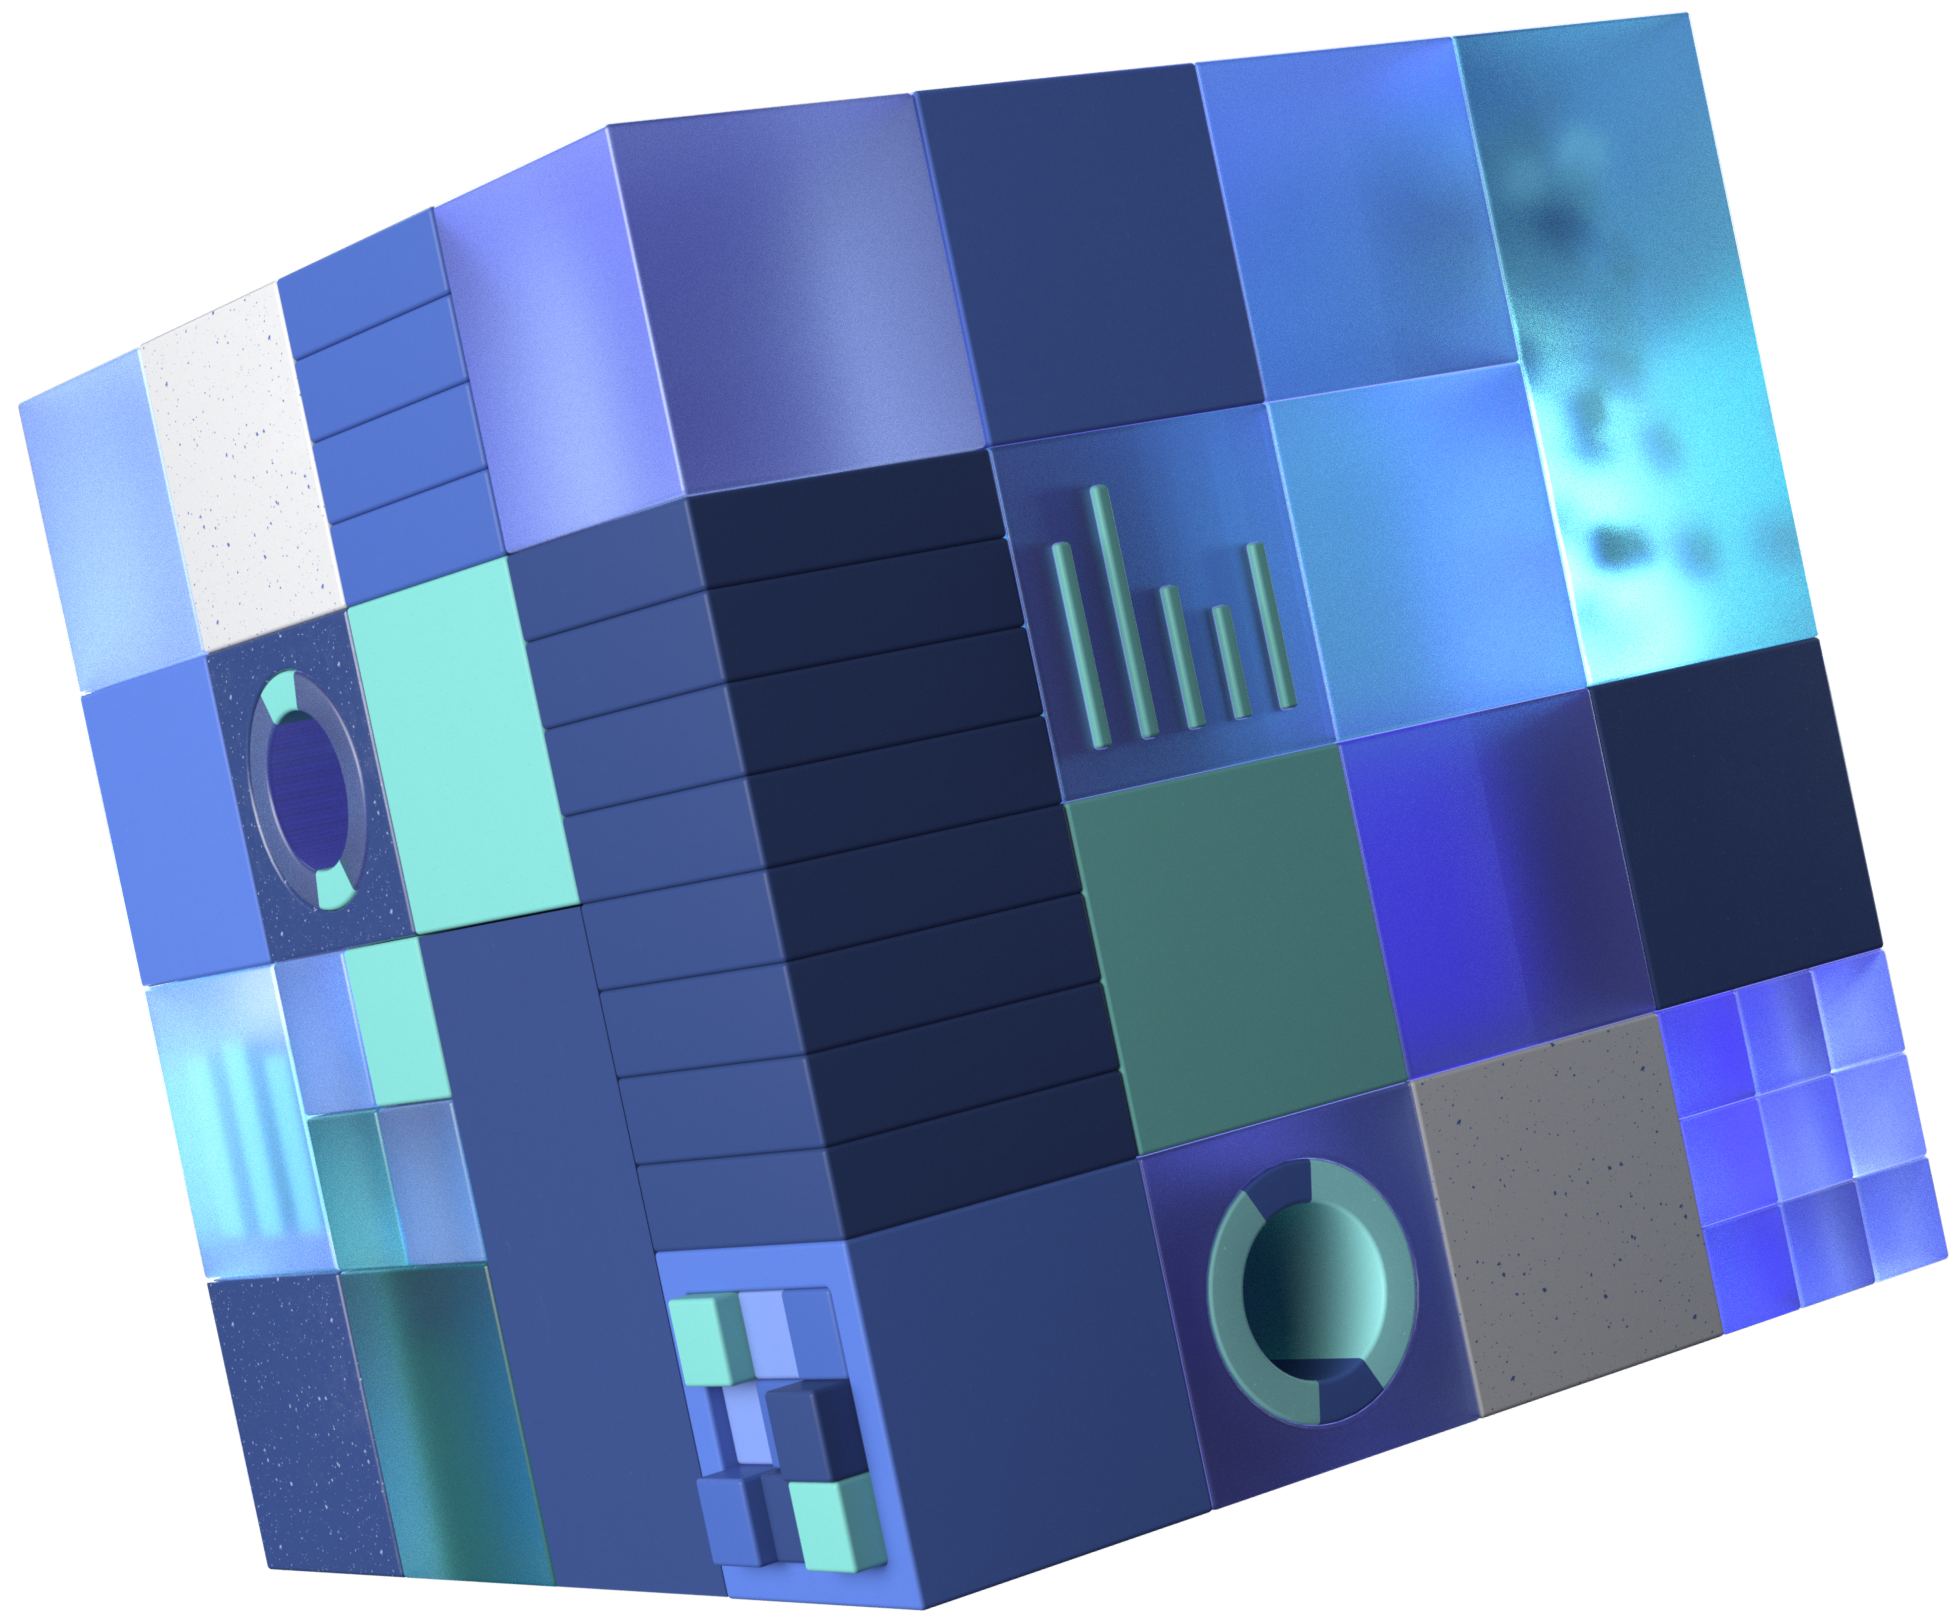 A cube representing the core technology